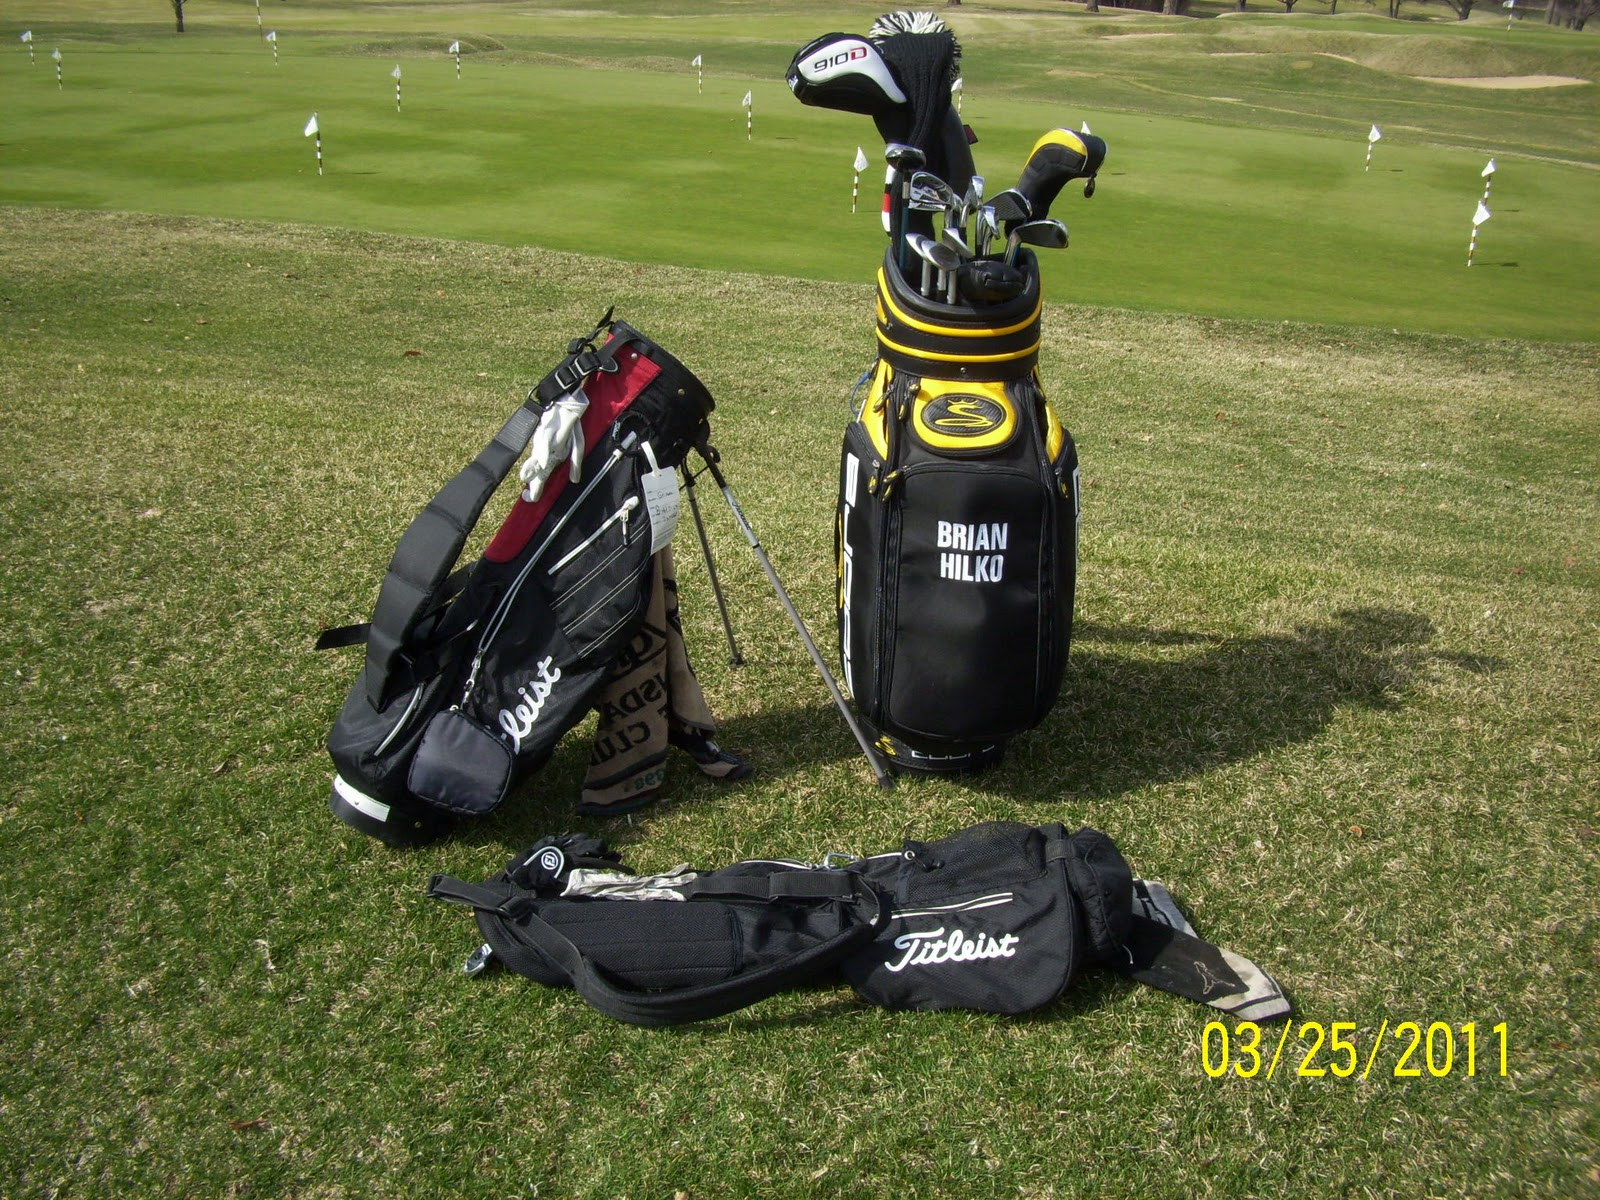 To Be Honest This Might The First Time I Have Used My Staff Bag In Almost 2 Years It Honestly Just Collects Dust With Old Clubs Love Though